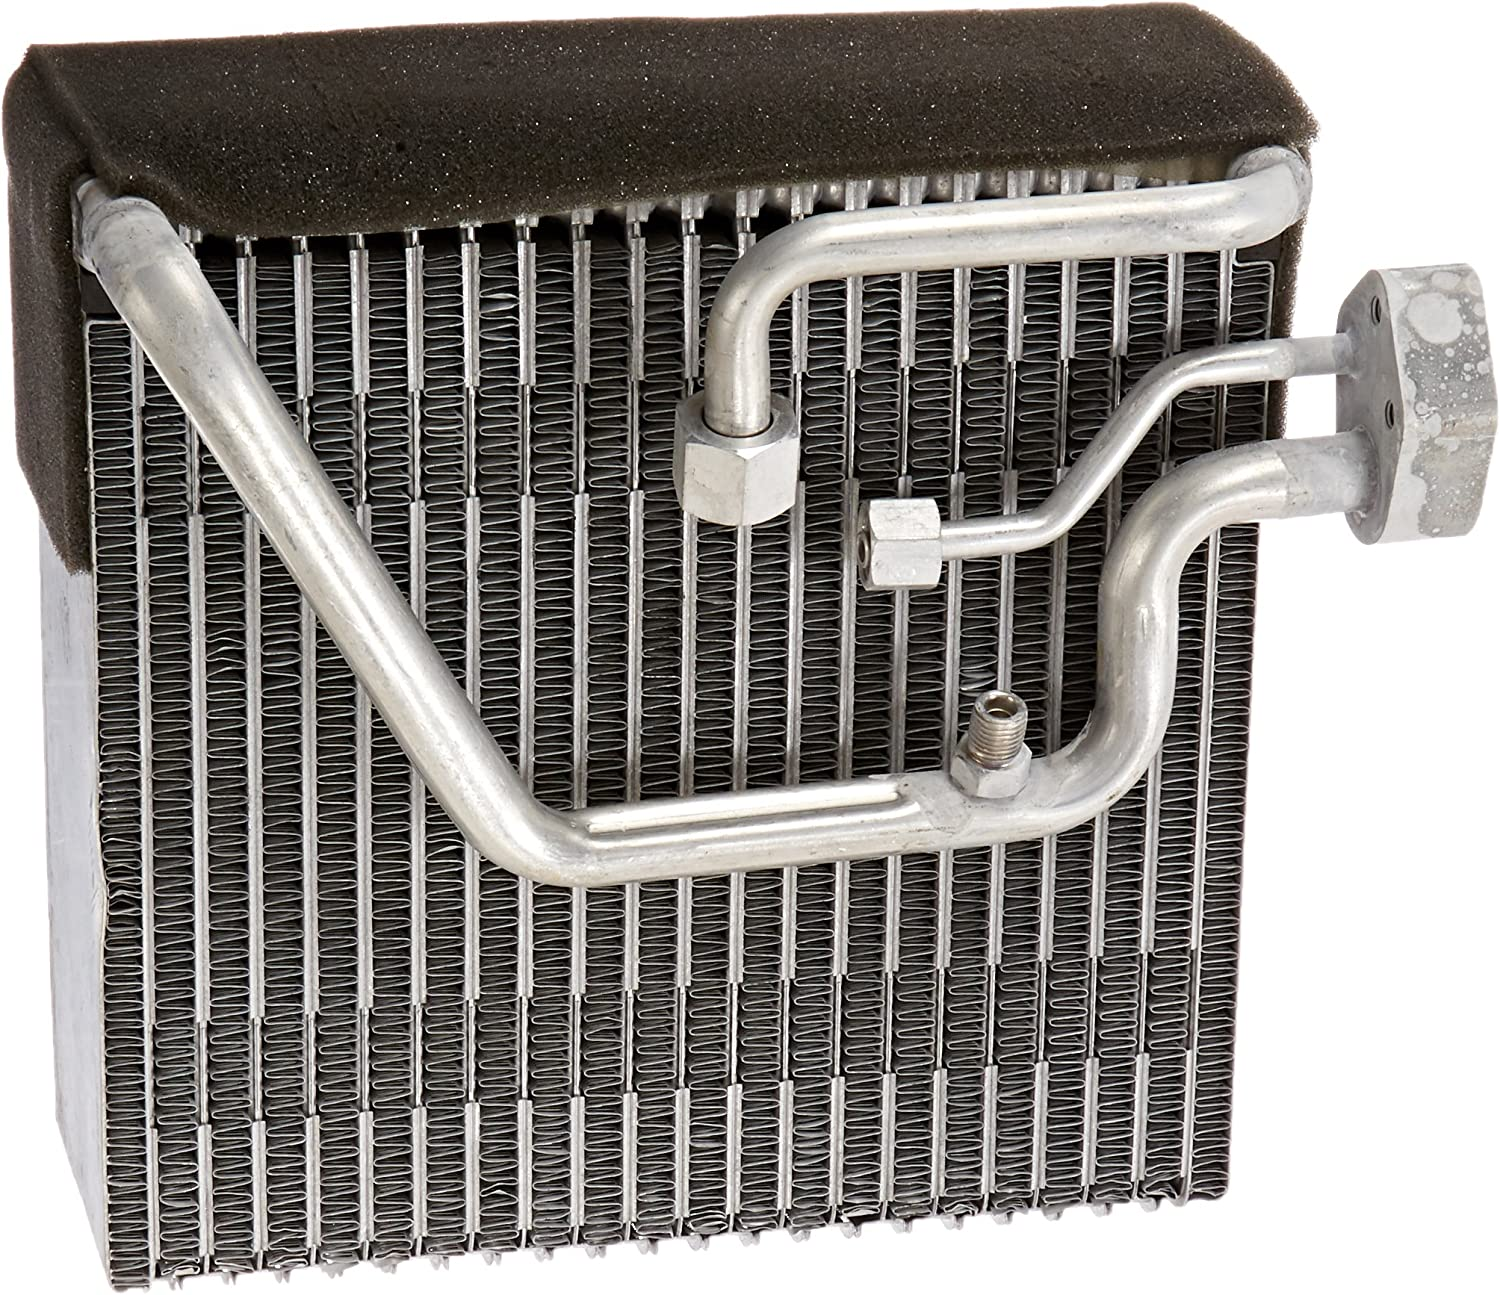 Four 35% OFF Seasons 54736 Evaporator Ranking integrated 1st place Core